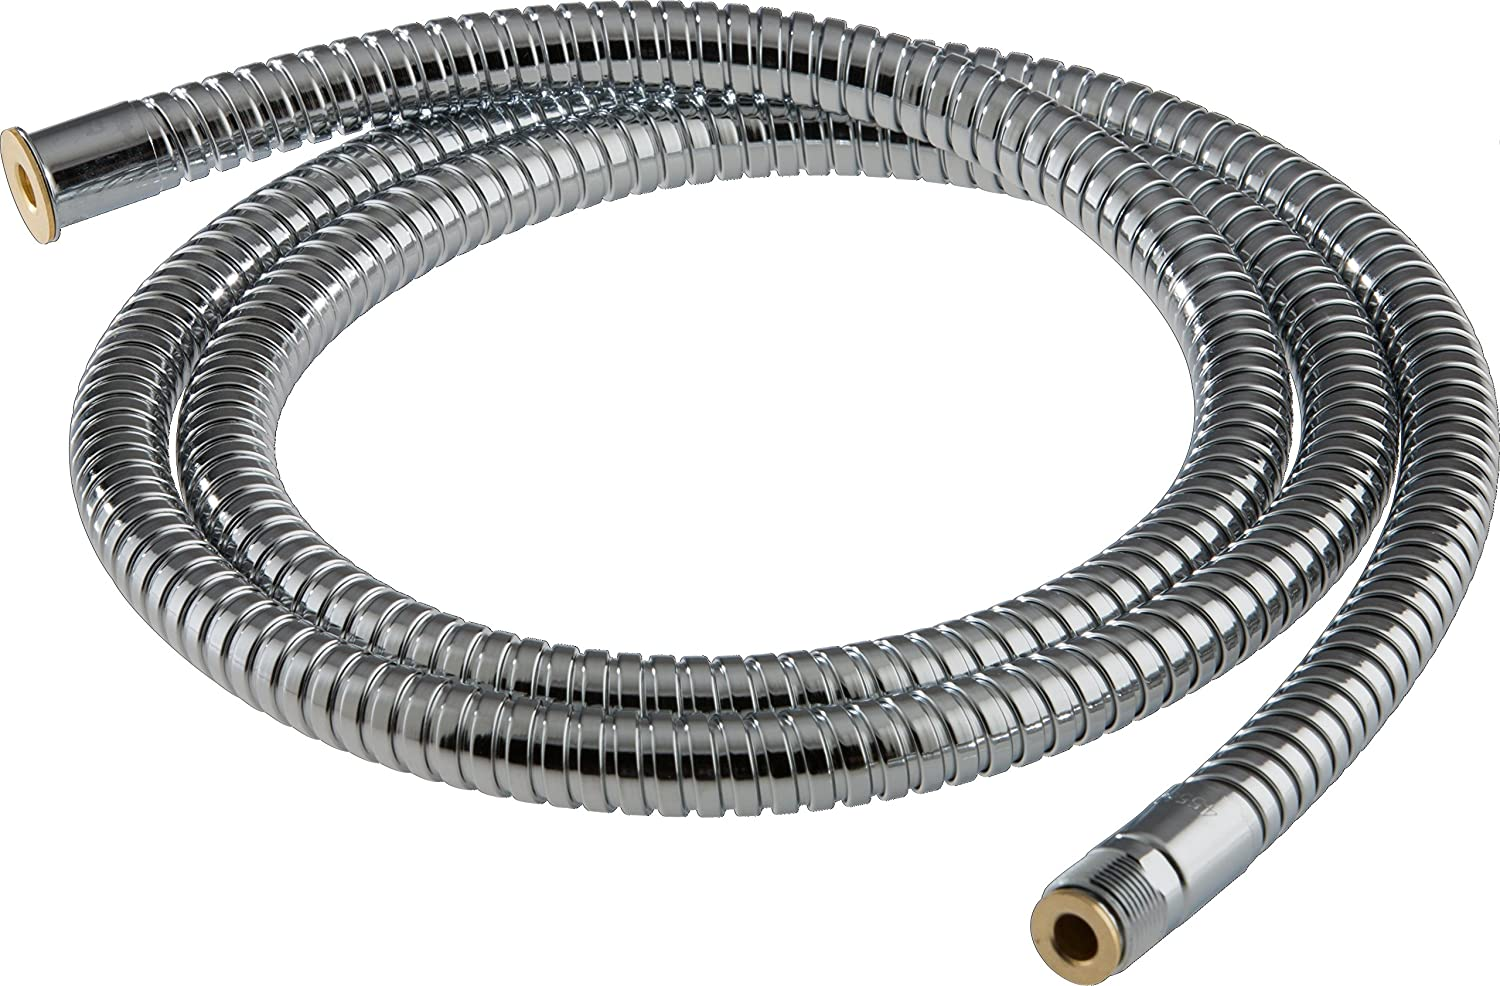 Delta Faucet RP40664 Hose - Hand Shower for R4700, Not Applicable ...